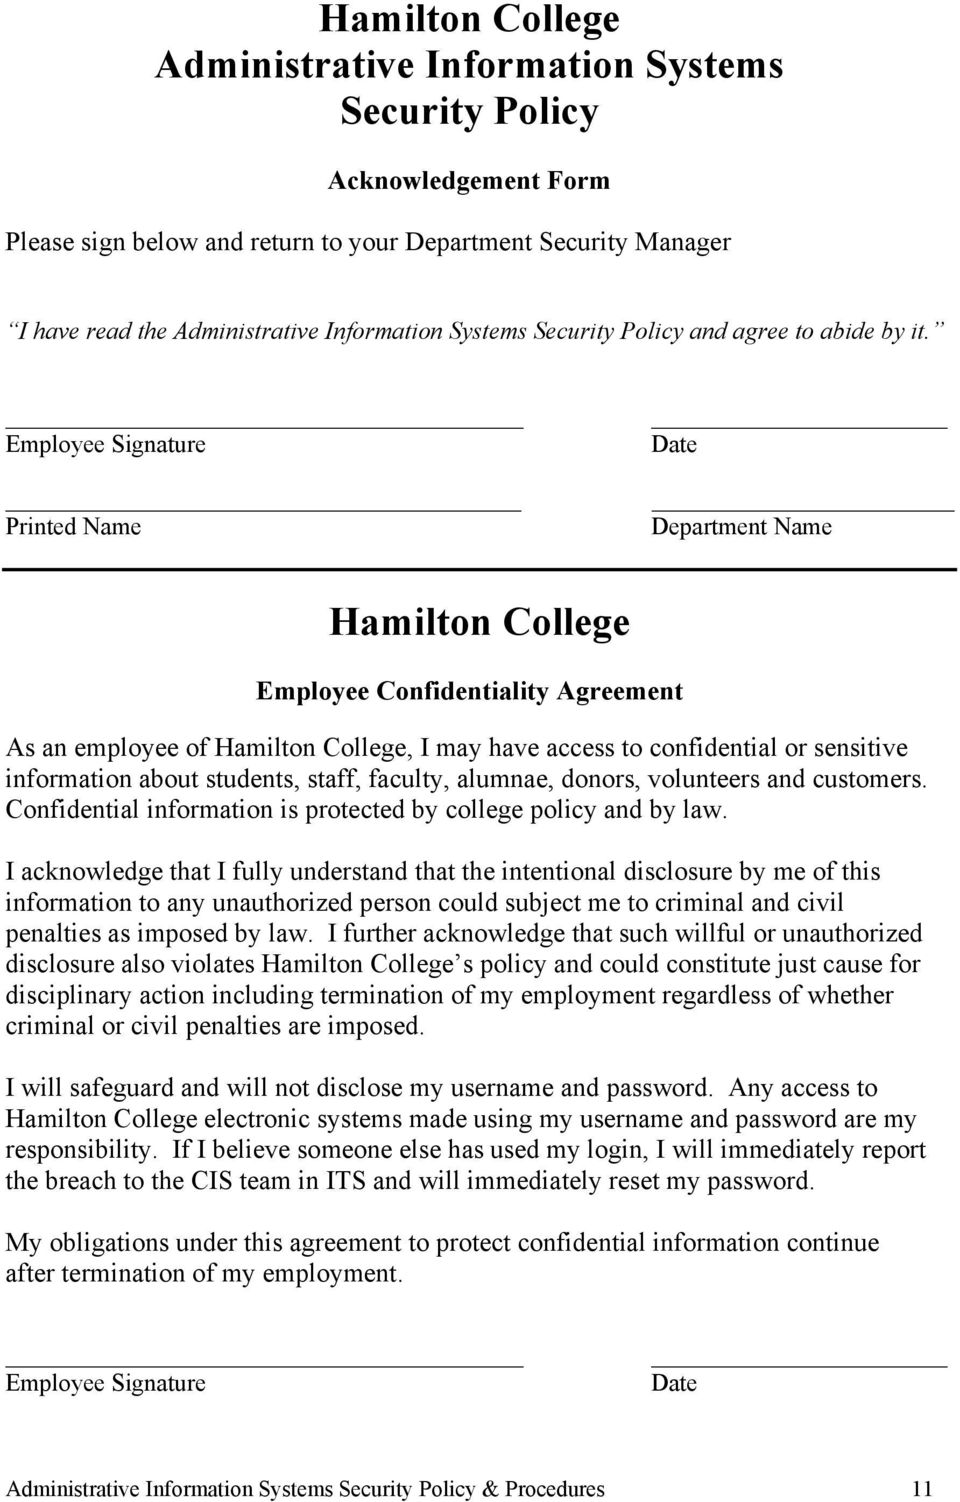 Employee Signature Printed Name Date Department Name Hamilton College Employee Confidentiality Agreement As an employee of Hamilton College, I may have access to confidential or sensitive information